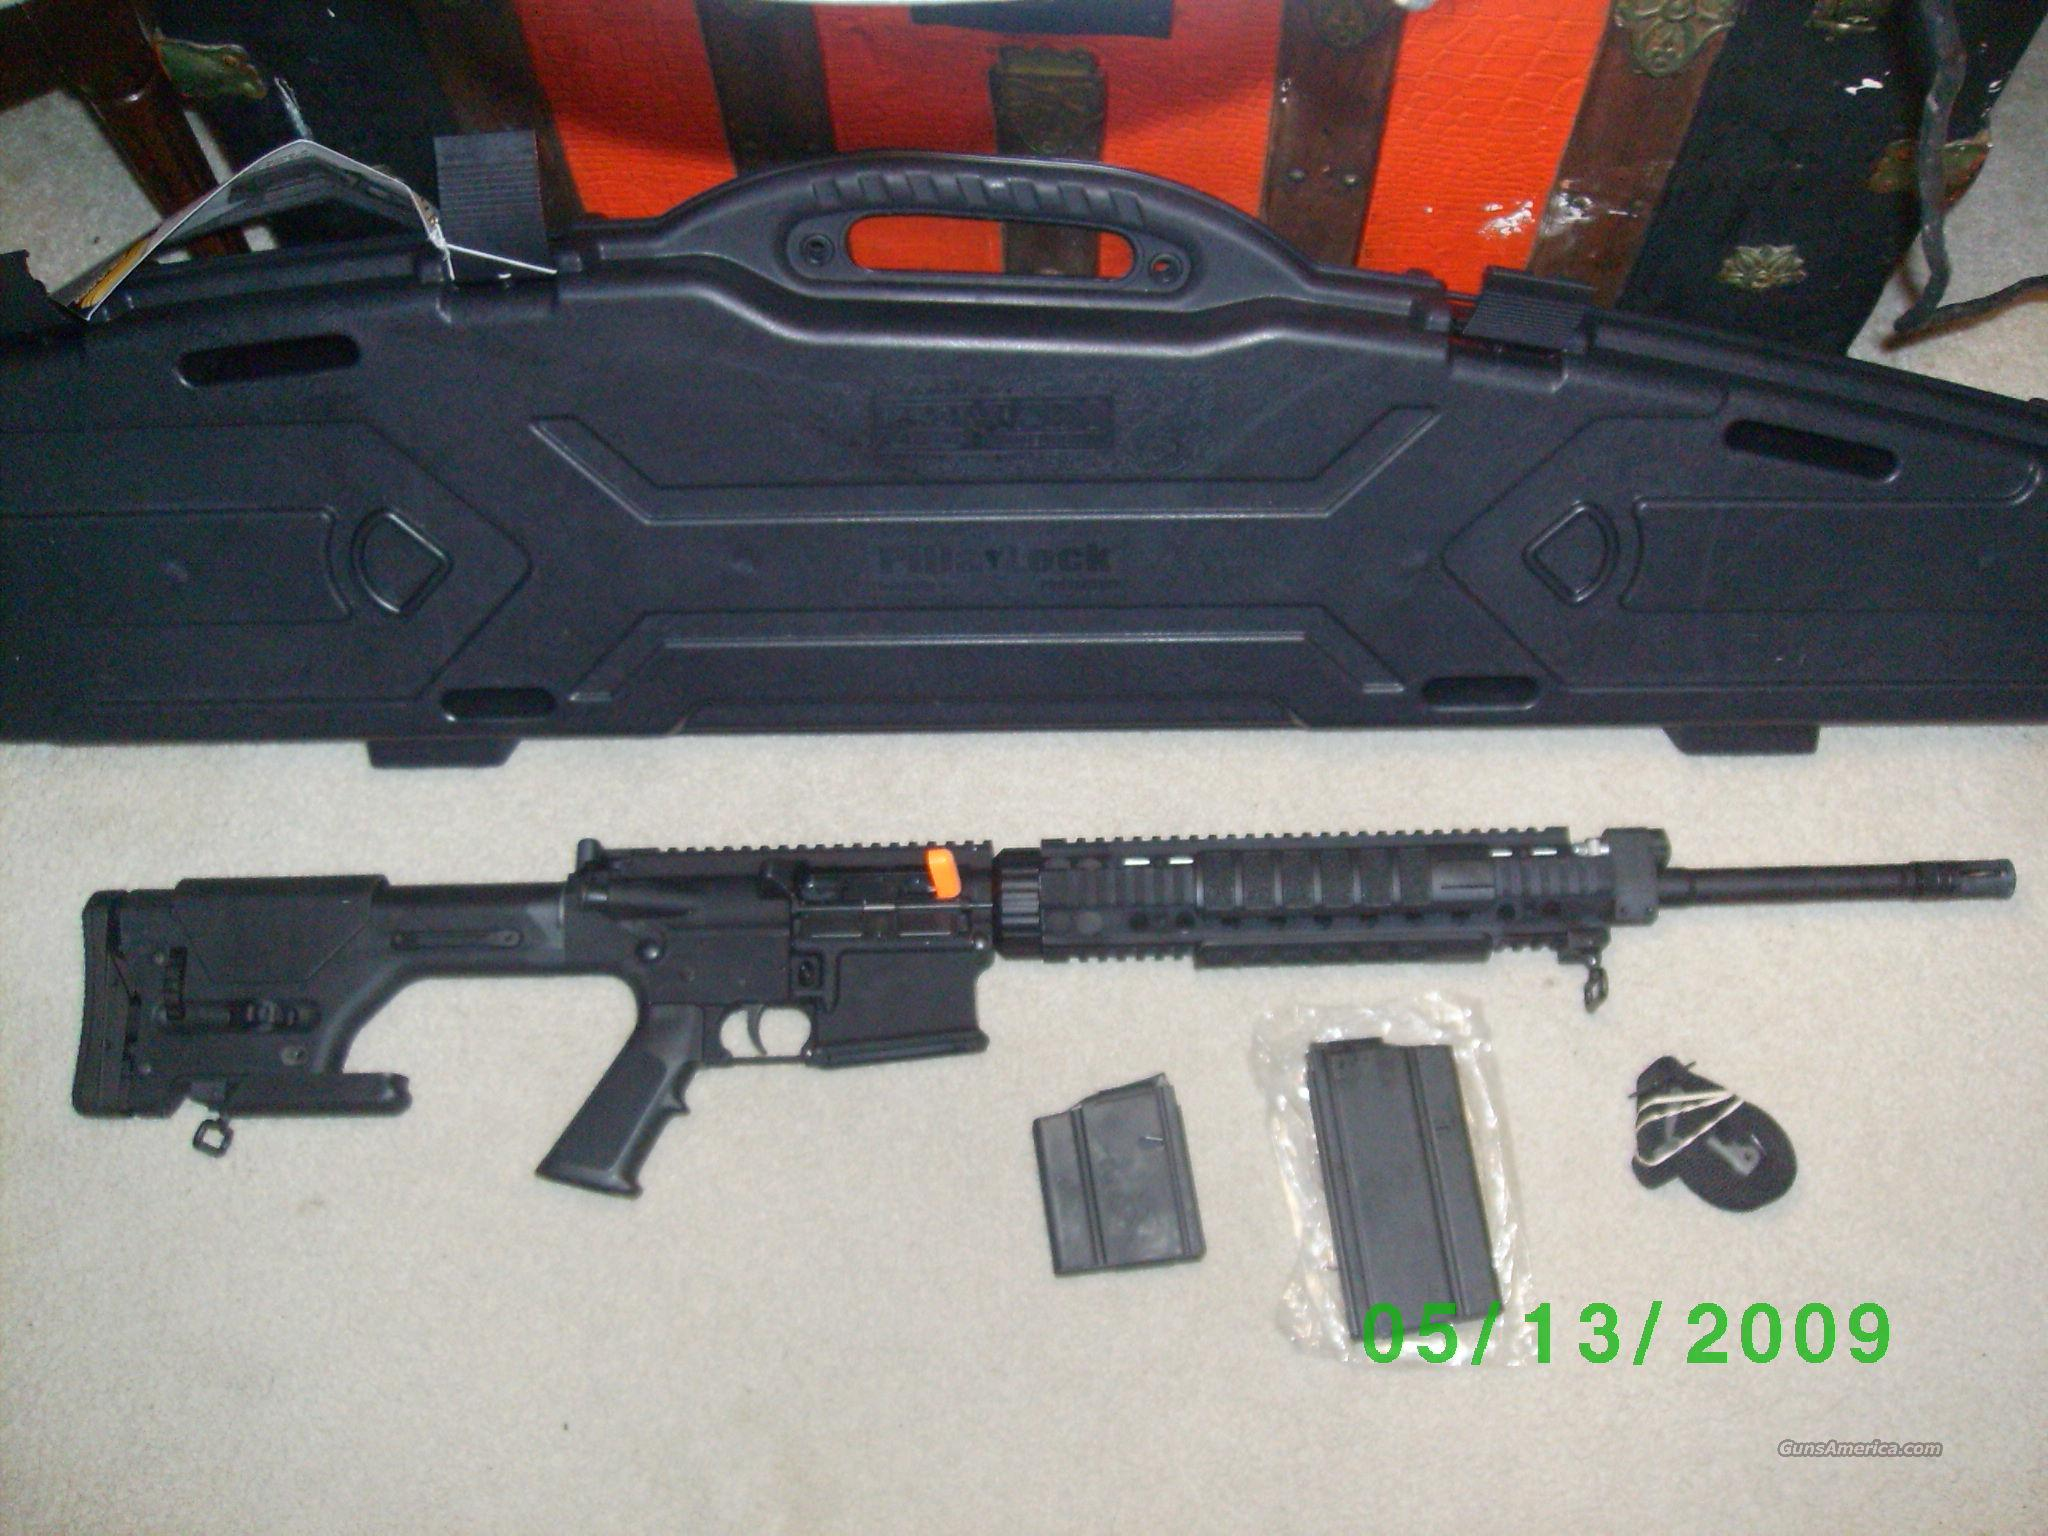 Armalite AR10 SuperSASS tactical rifle system  Guns > Rifles > Armalite Rifles > Complete Rifles